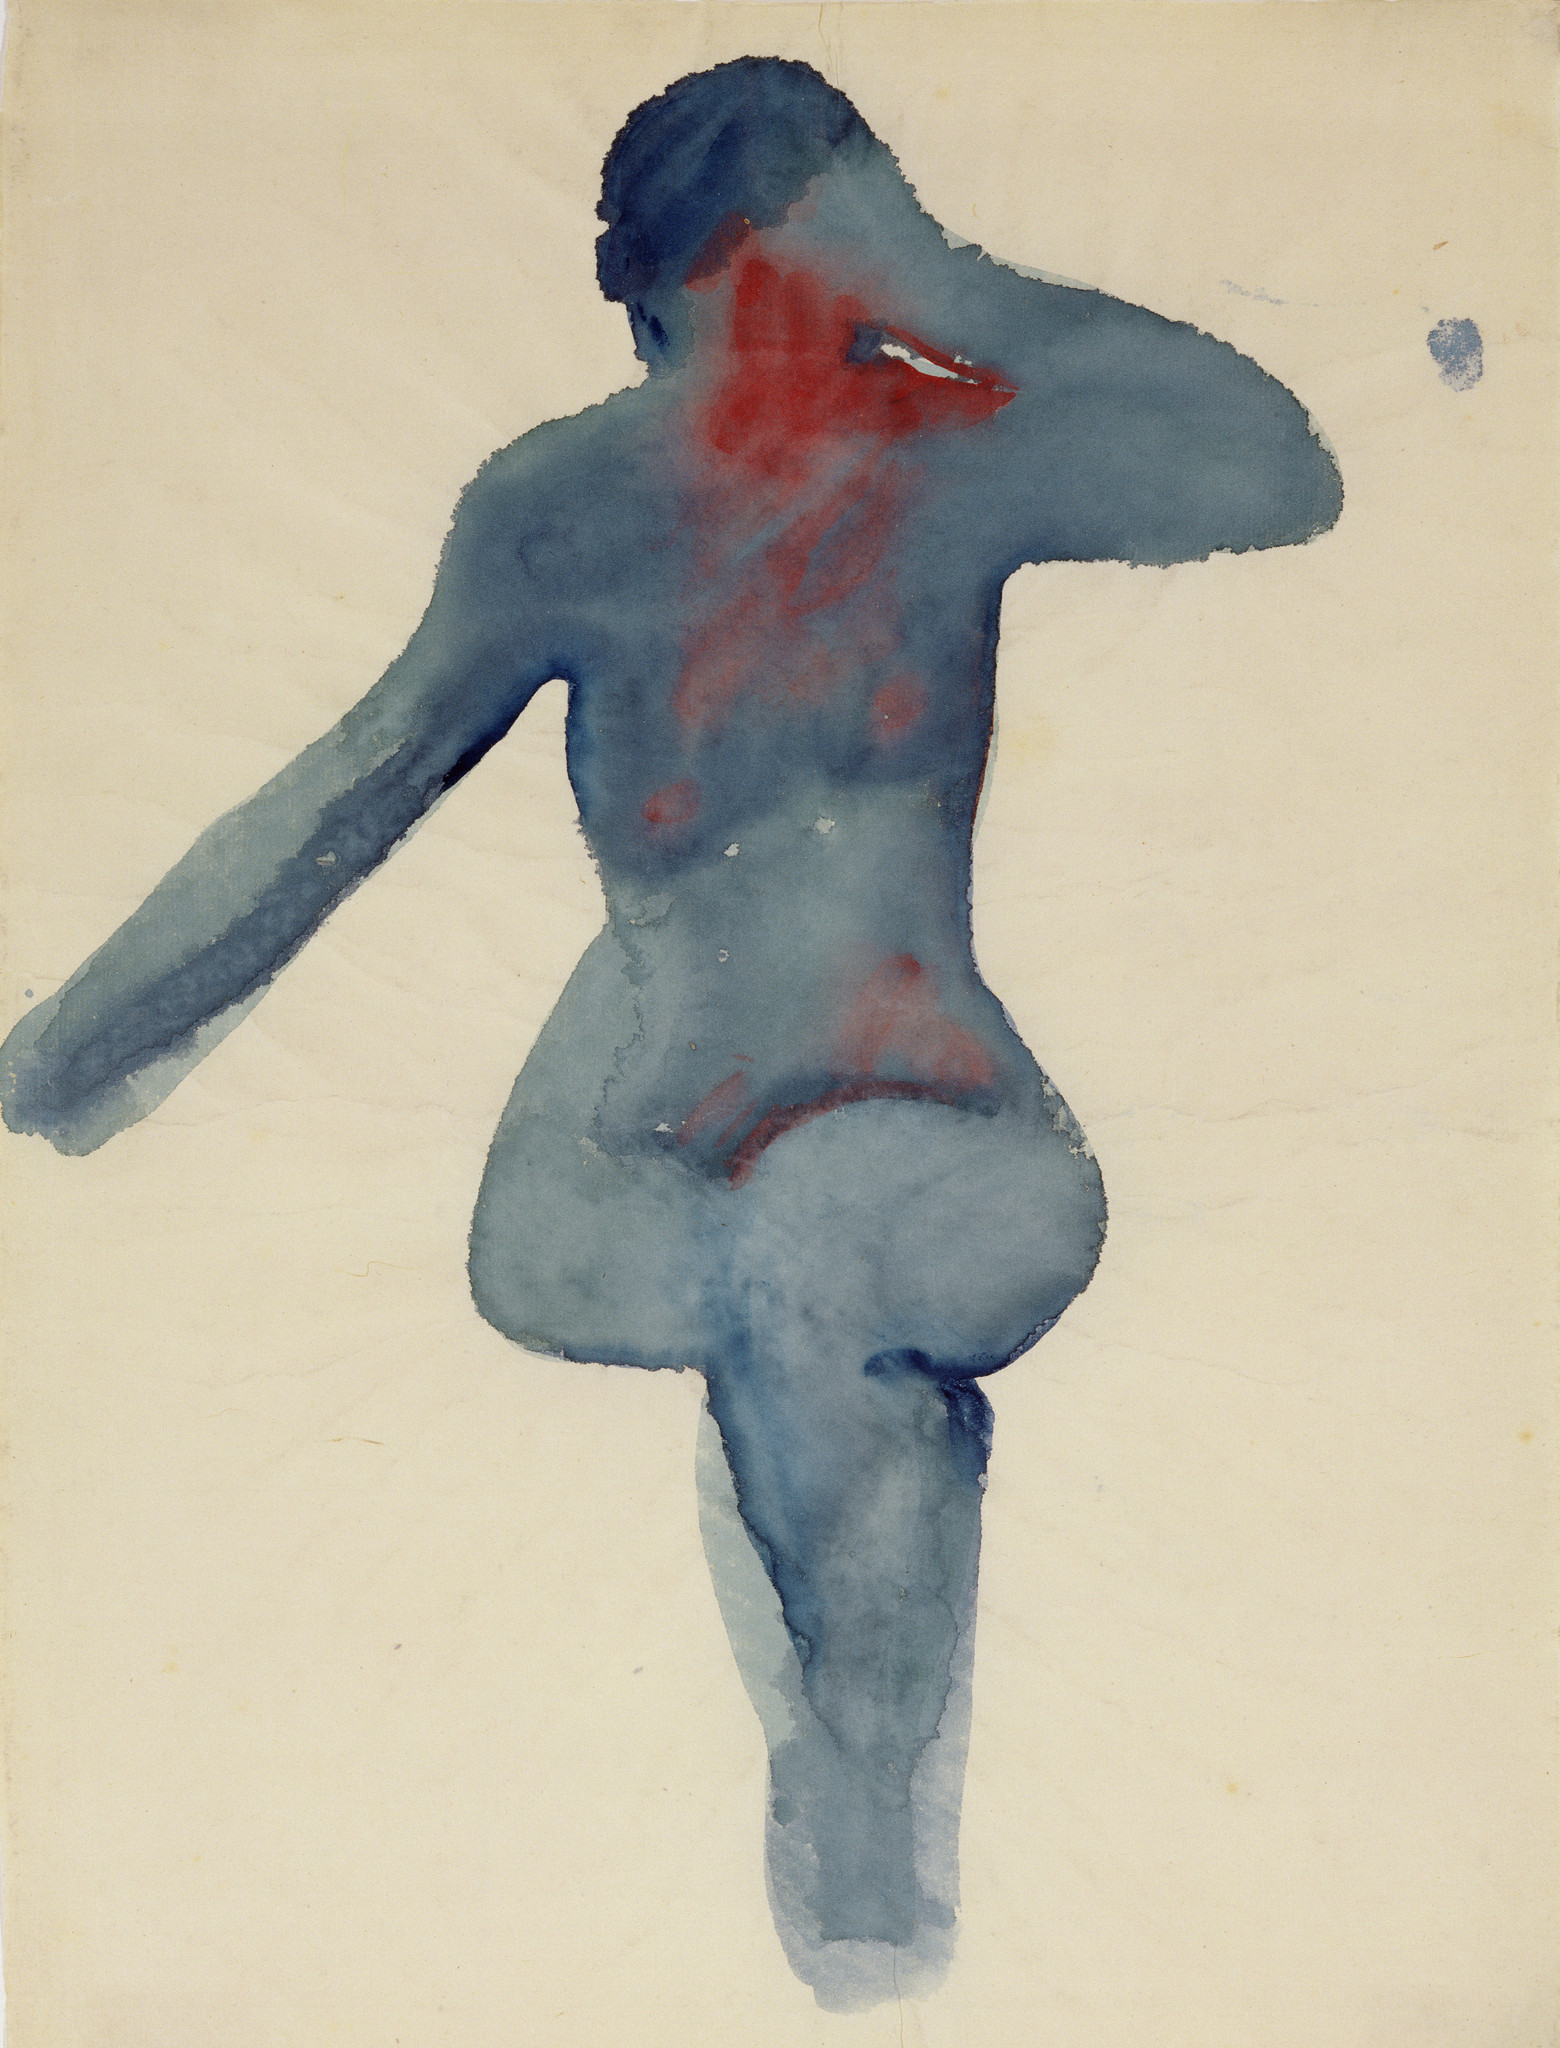 """Nude Series VIII,"" 1917, watercolor on paper, 18 inches by 13-1/2 inches. Georgia O'Keeffe Museum Gift of the Burnett Foundation and the Georgia O'Keeffe Foundation."